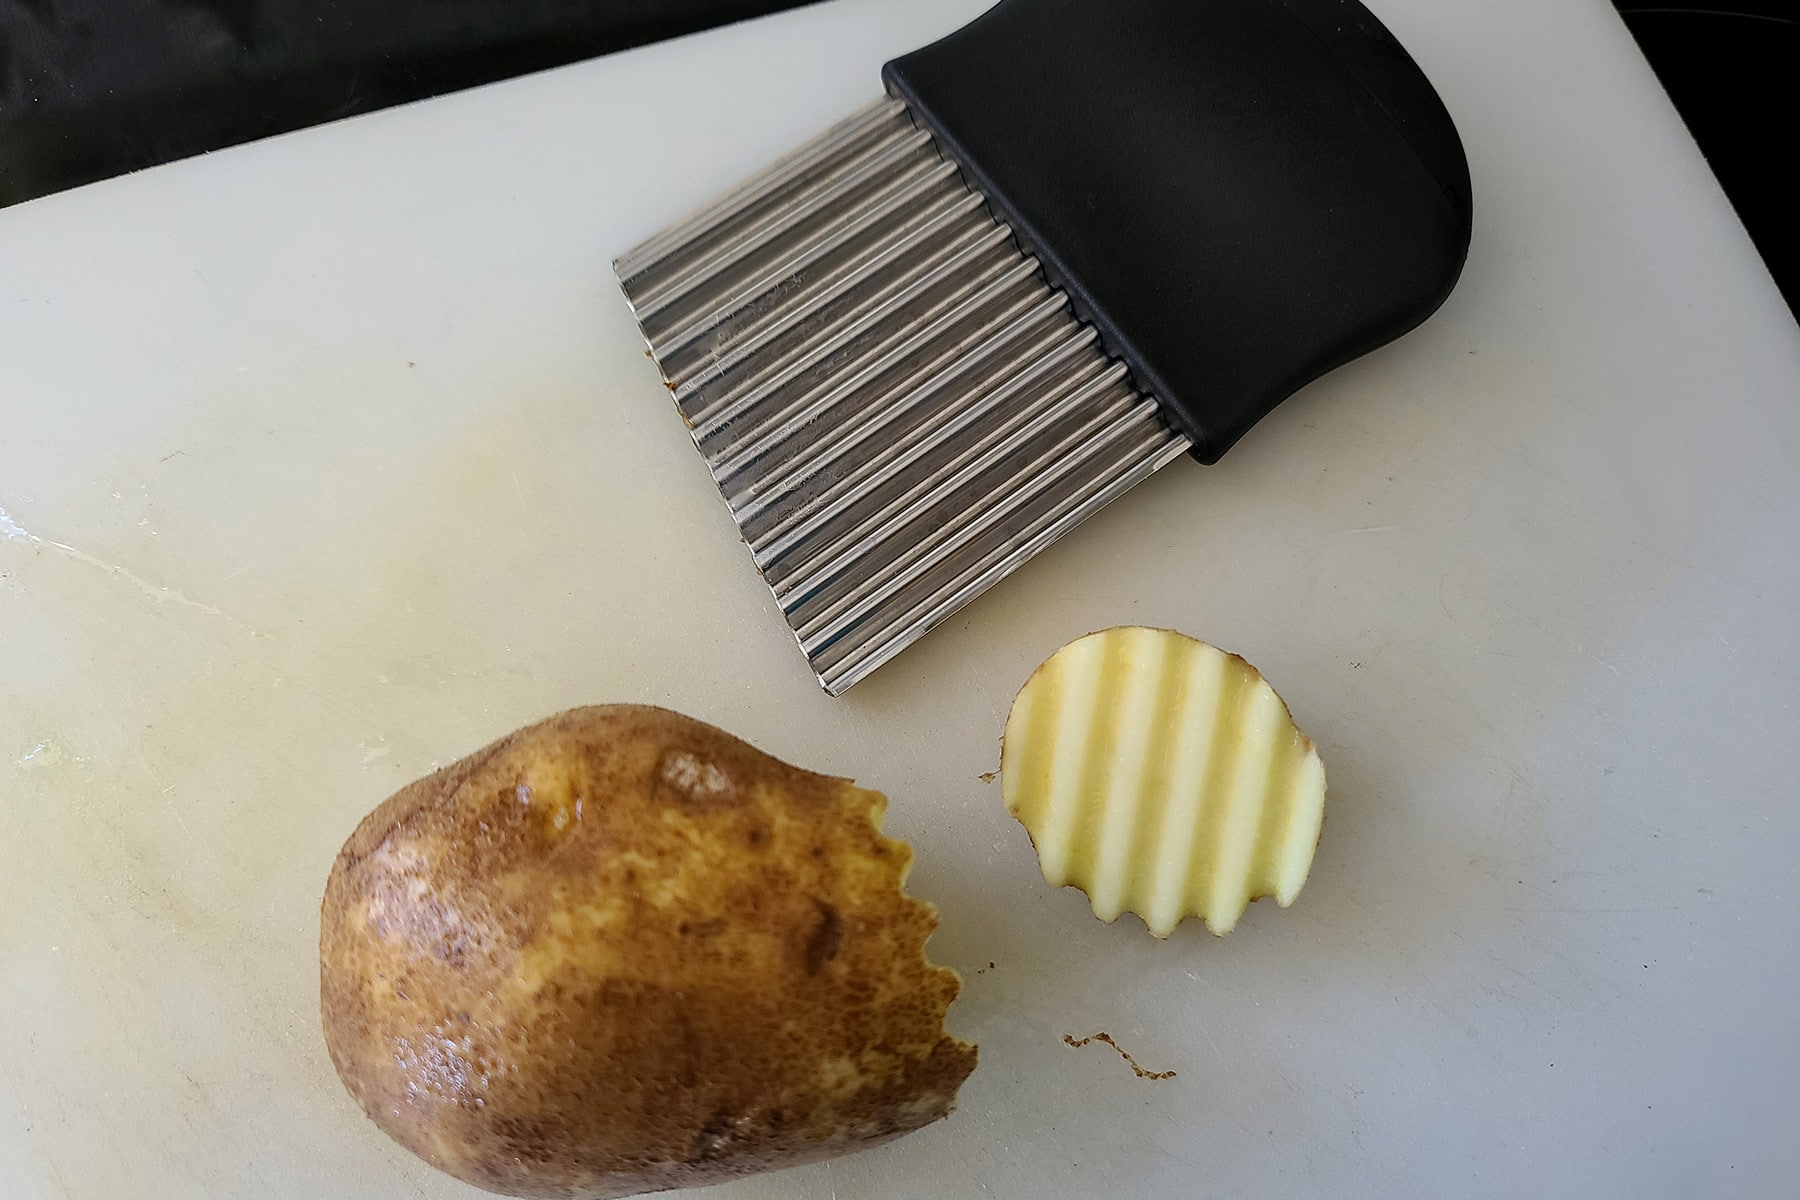 A potato and a crinkle cut knife on a cutting board, along with the crinkle cut end of the potato that has been cut off.